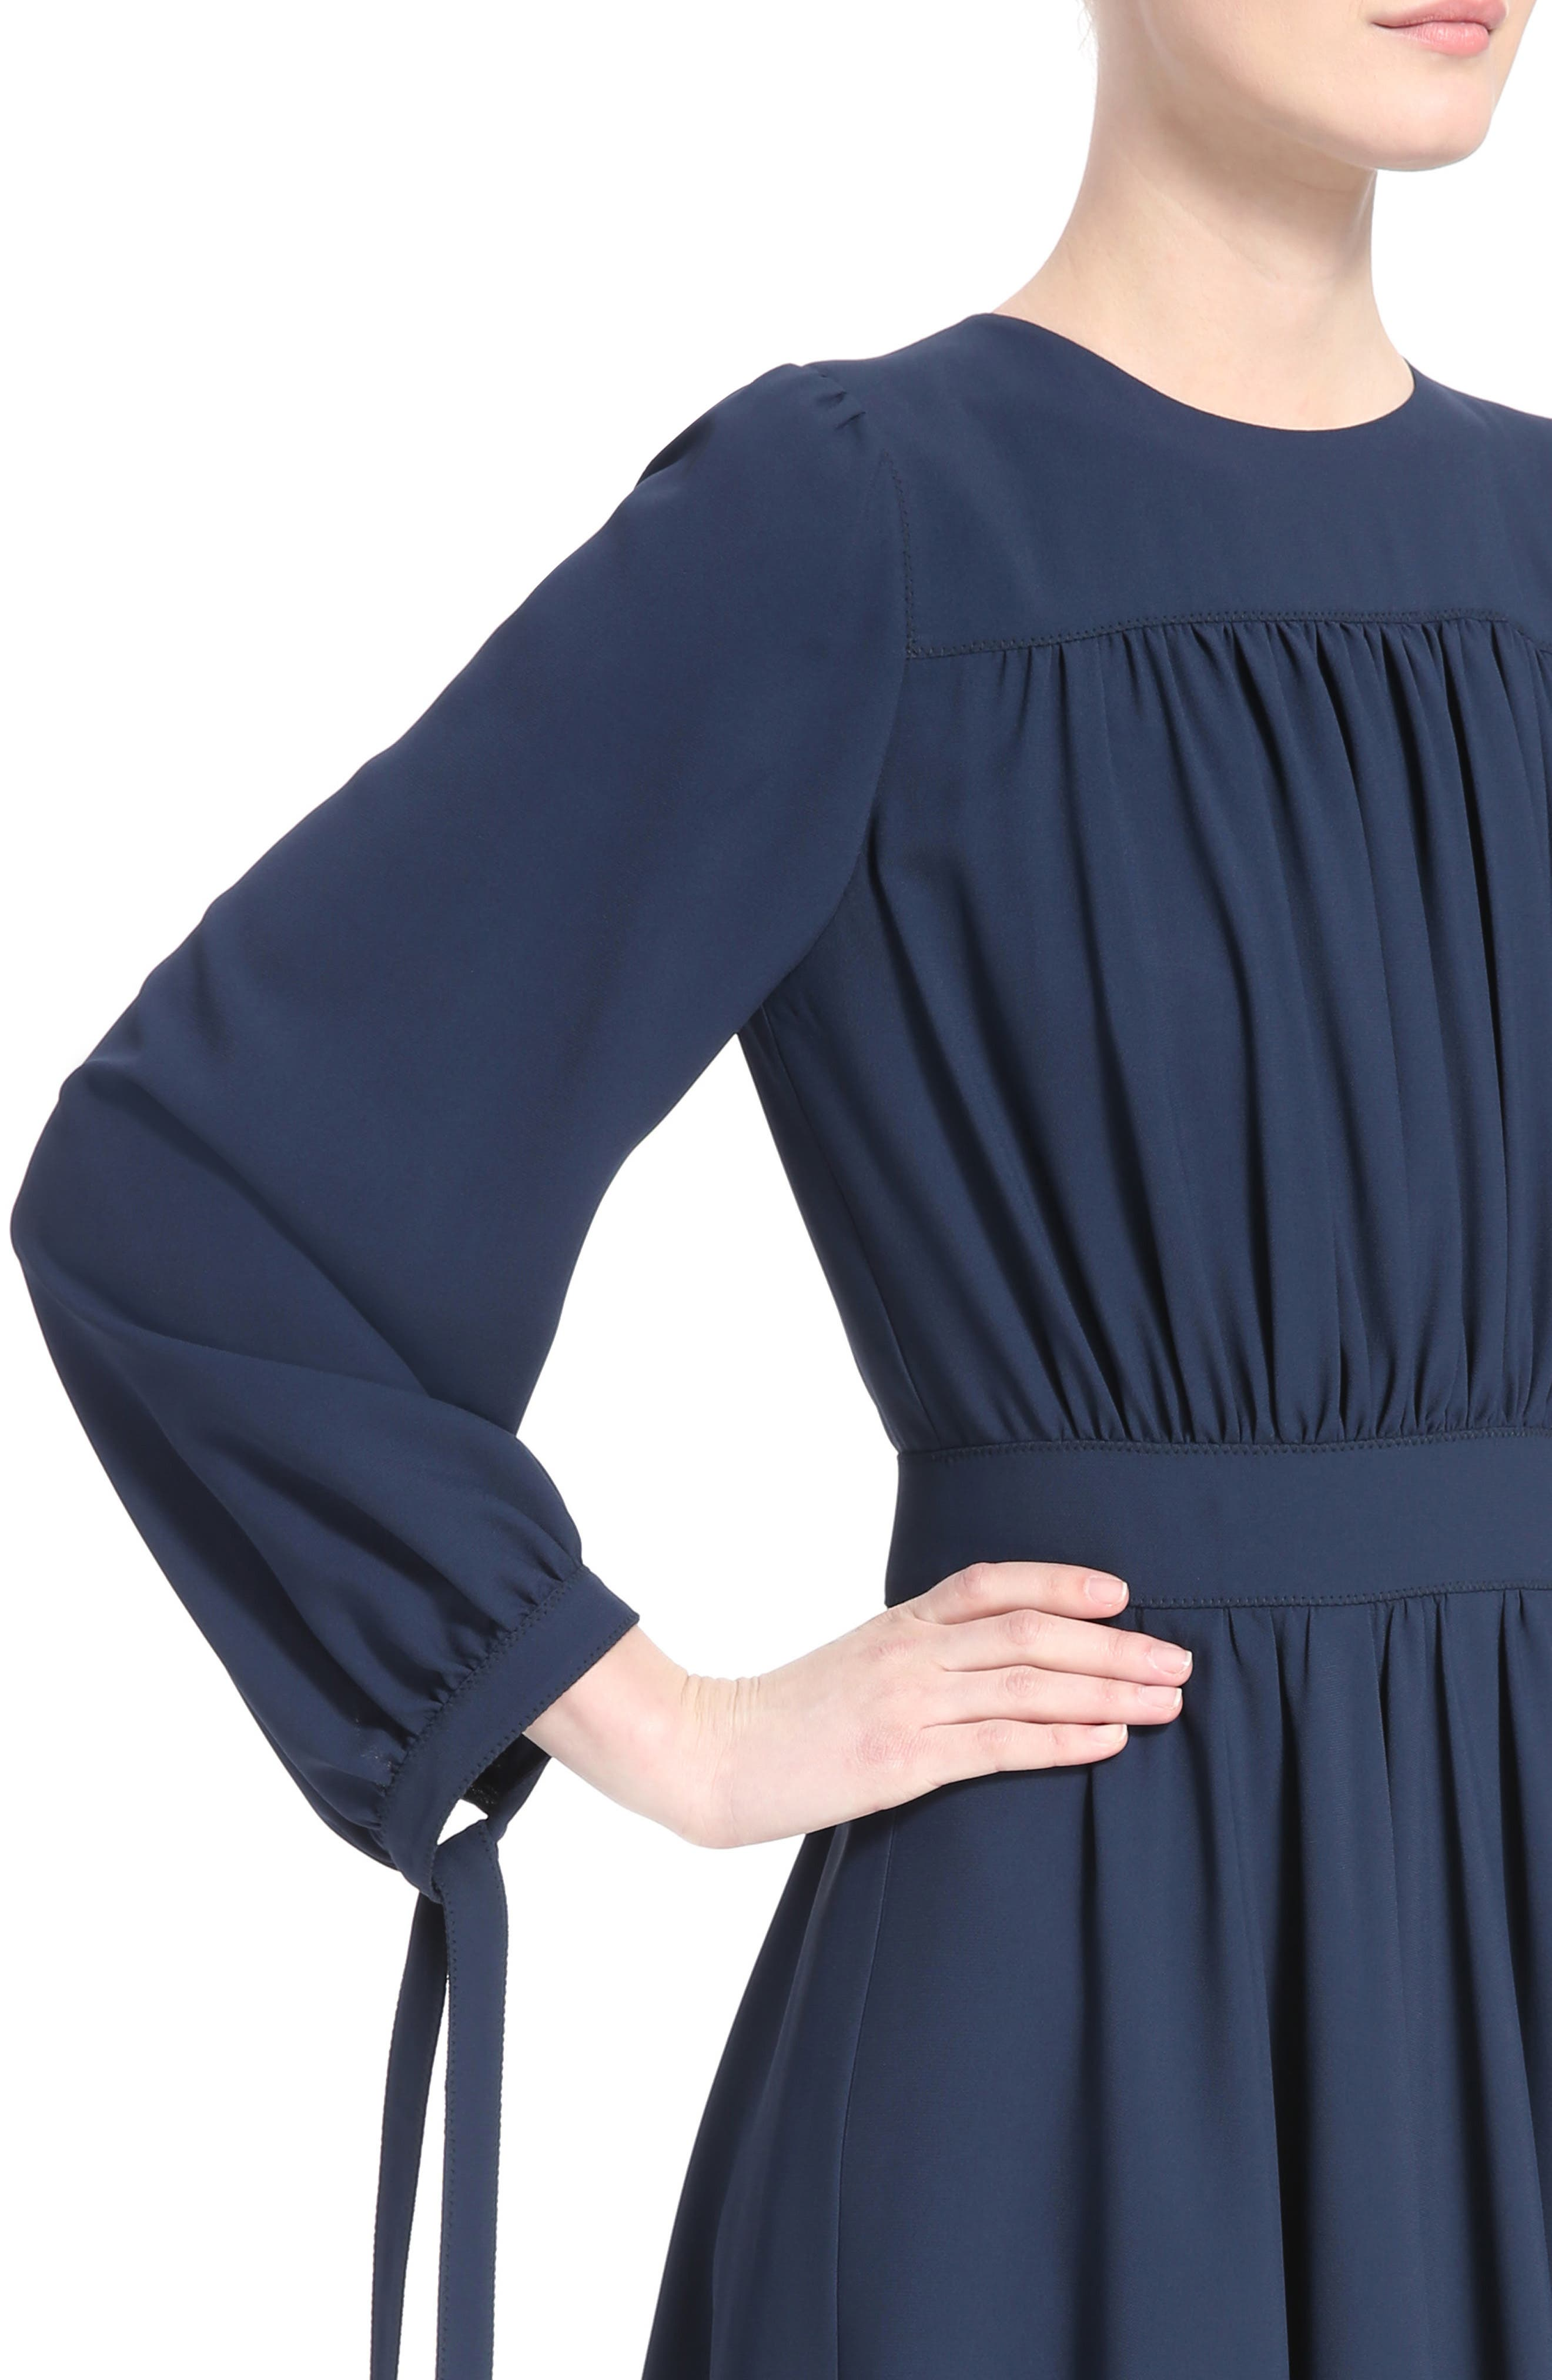 Pleated Tie Cuff Cady Dress,                             Alternate thumbnail 4, color,                             401